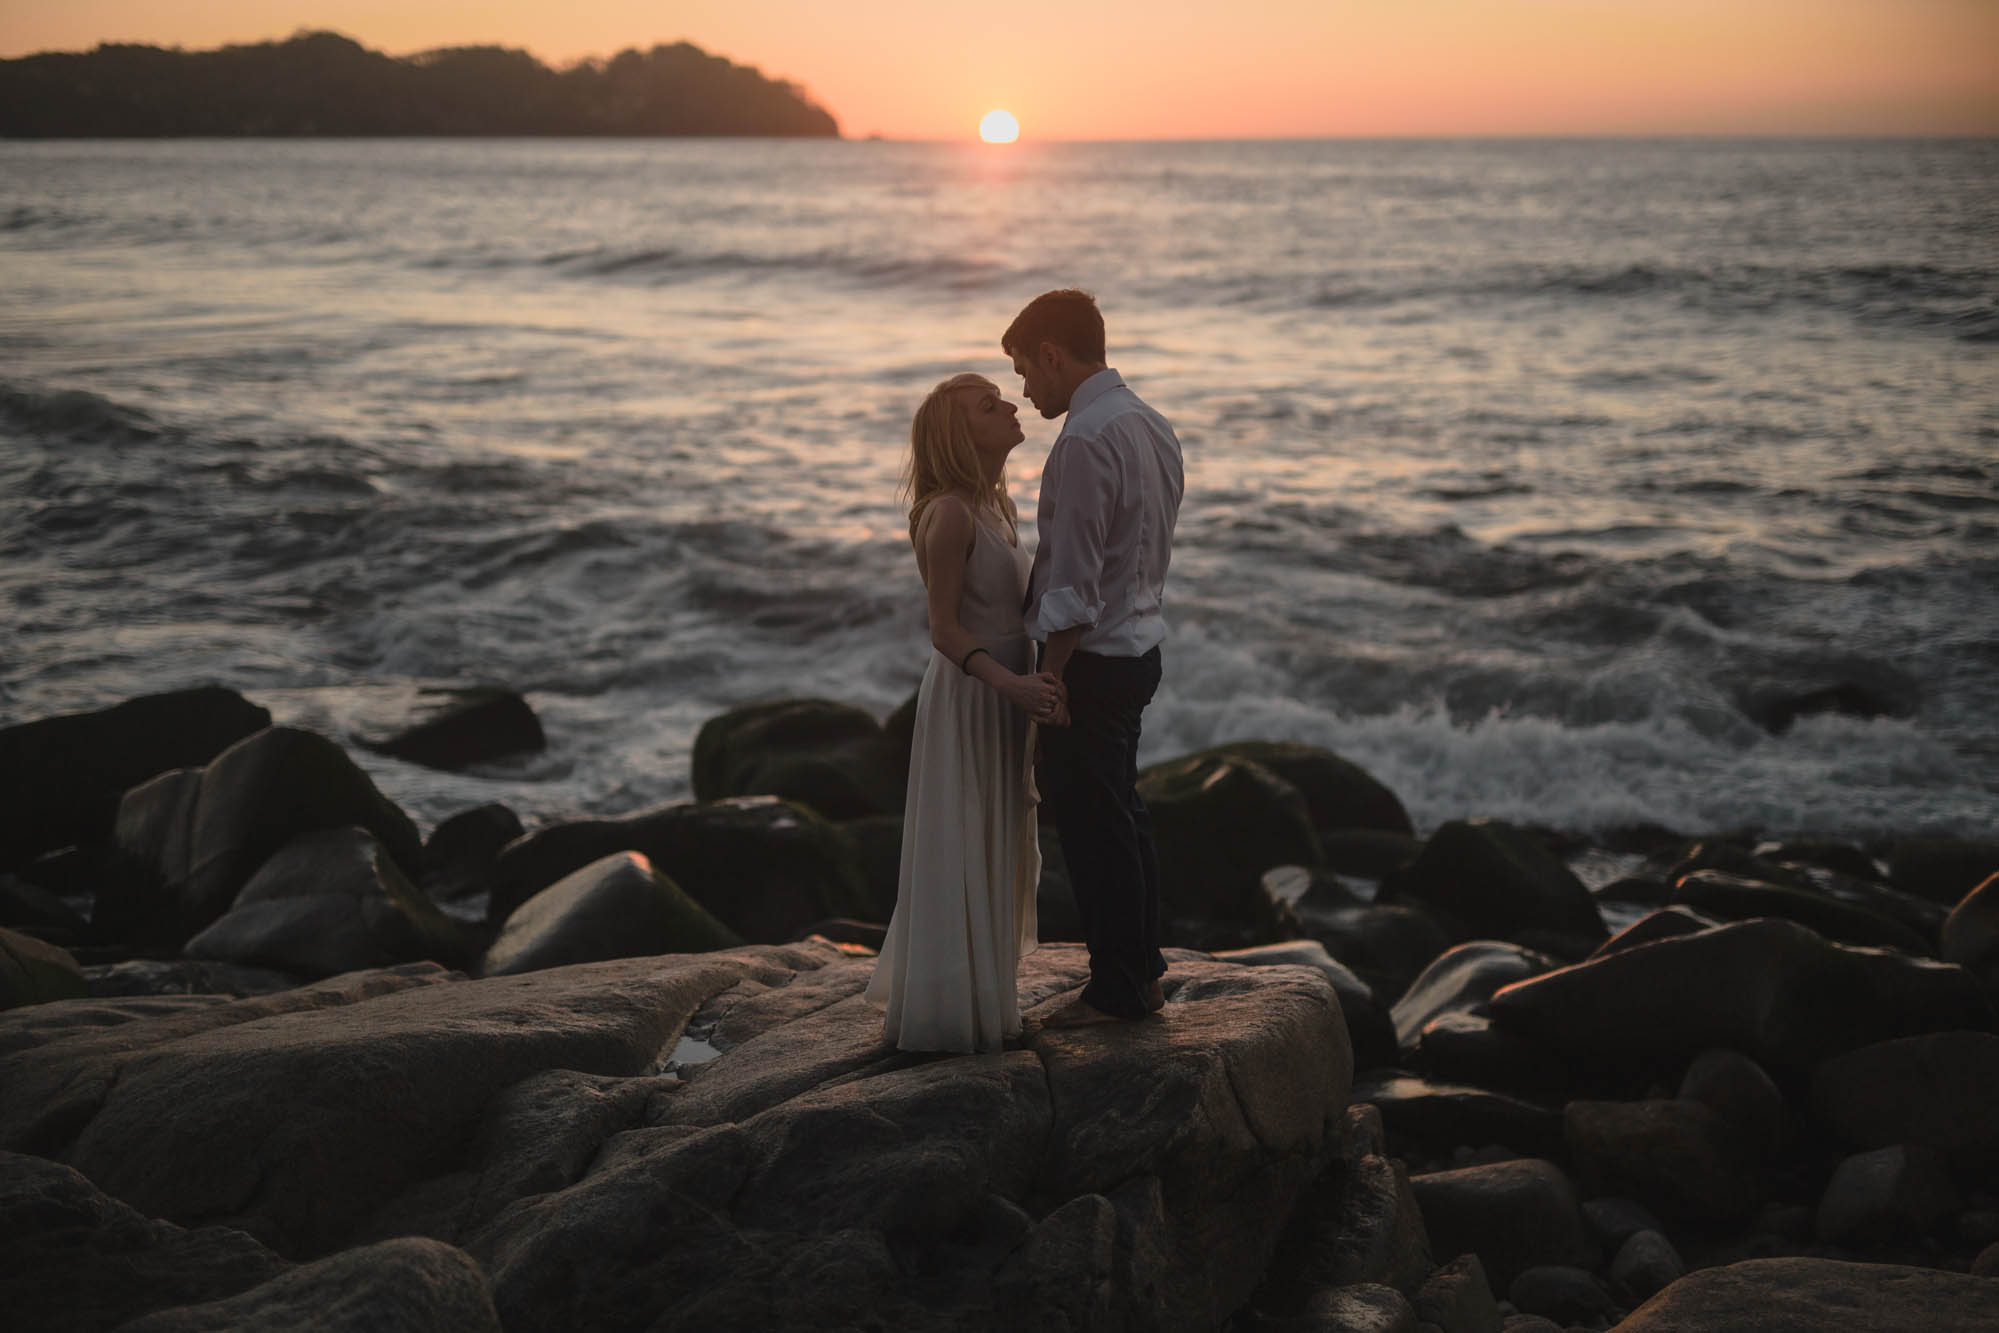 Jenna + Joe - sayulita, mexico